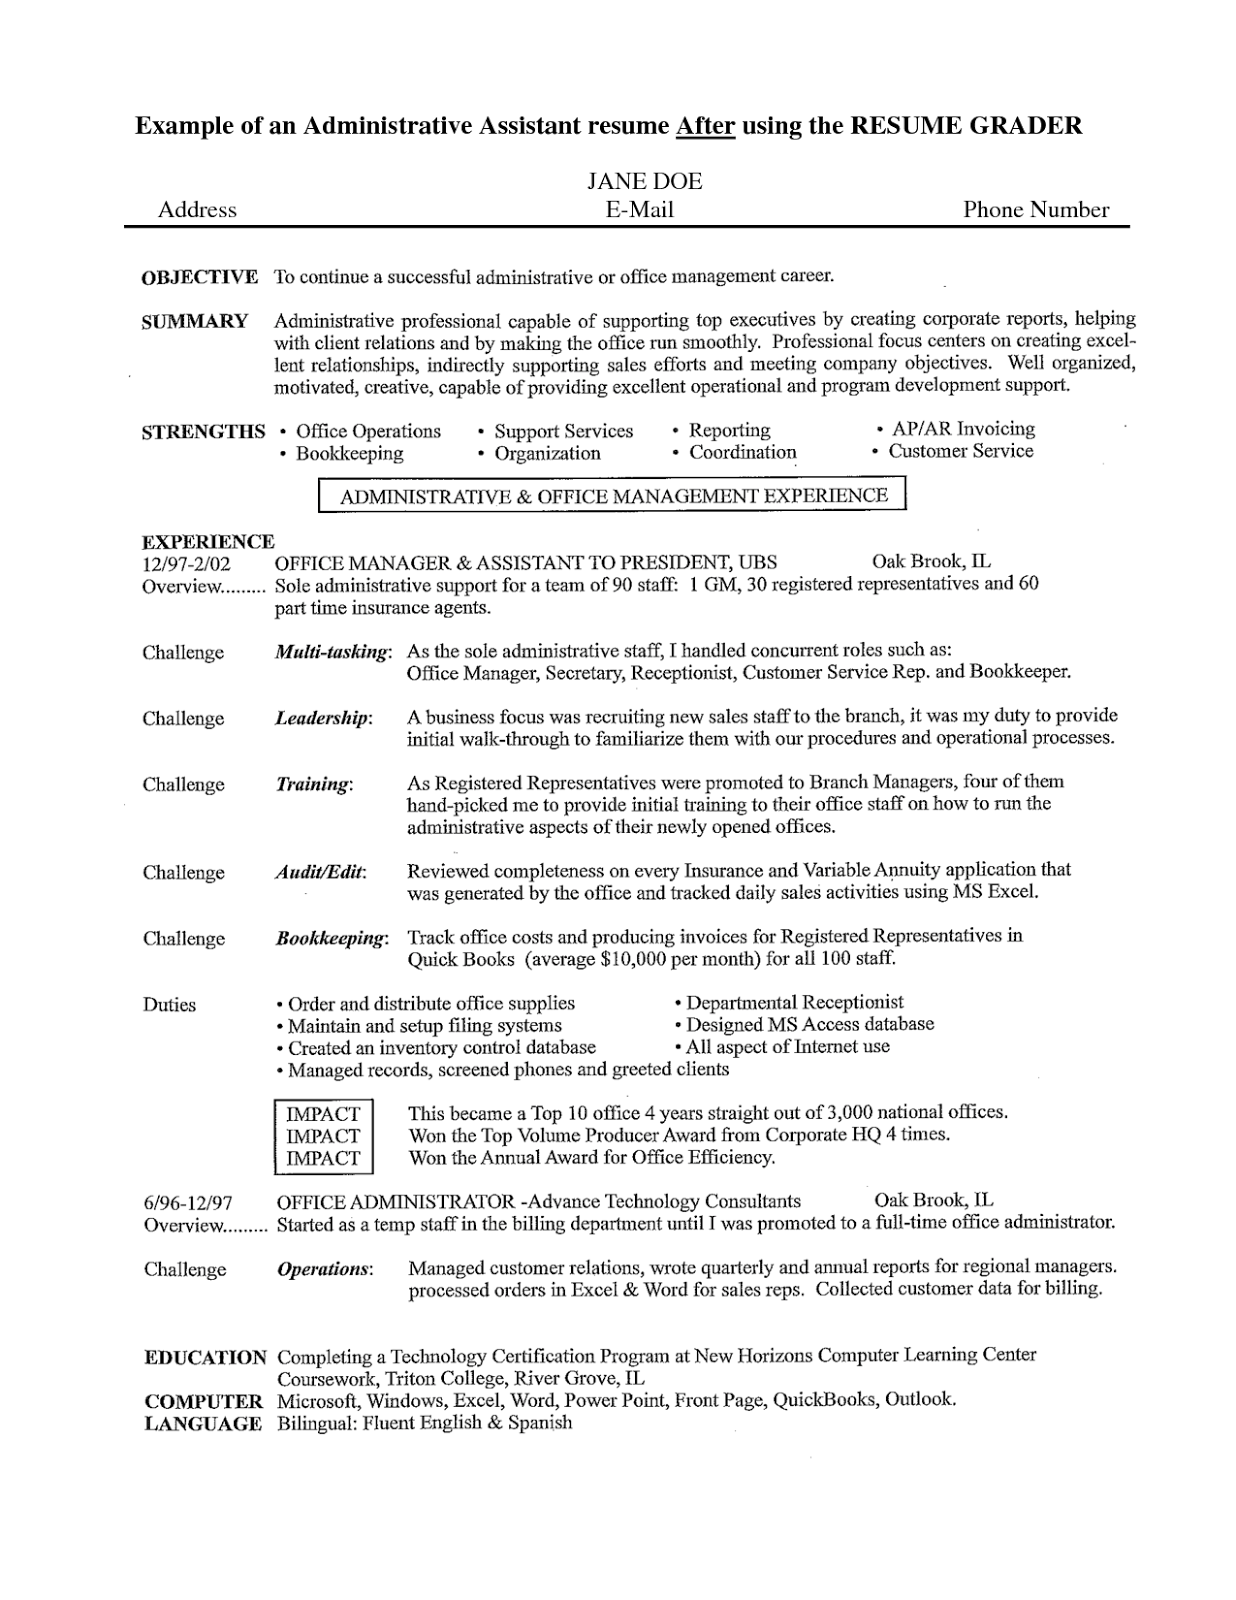 How To Write A Resume Objective For A Teaching Position Sample Objective On Resume For Administrative Assistant